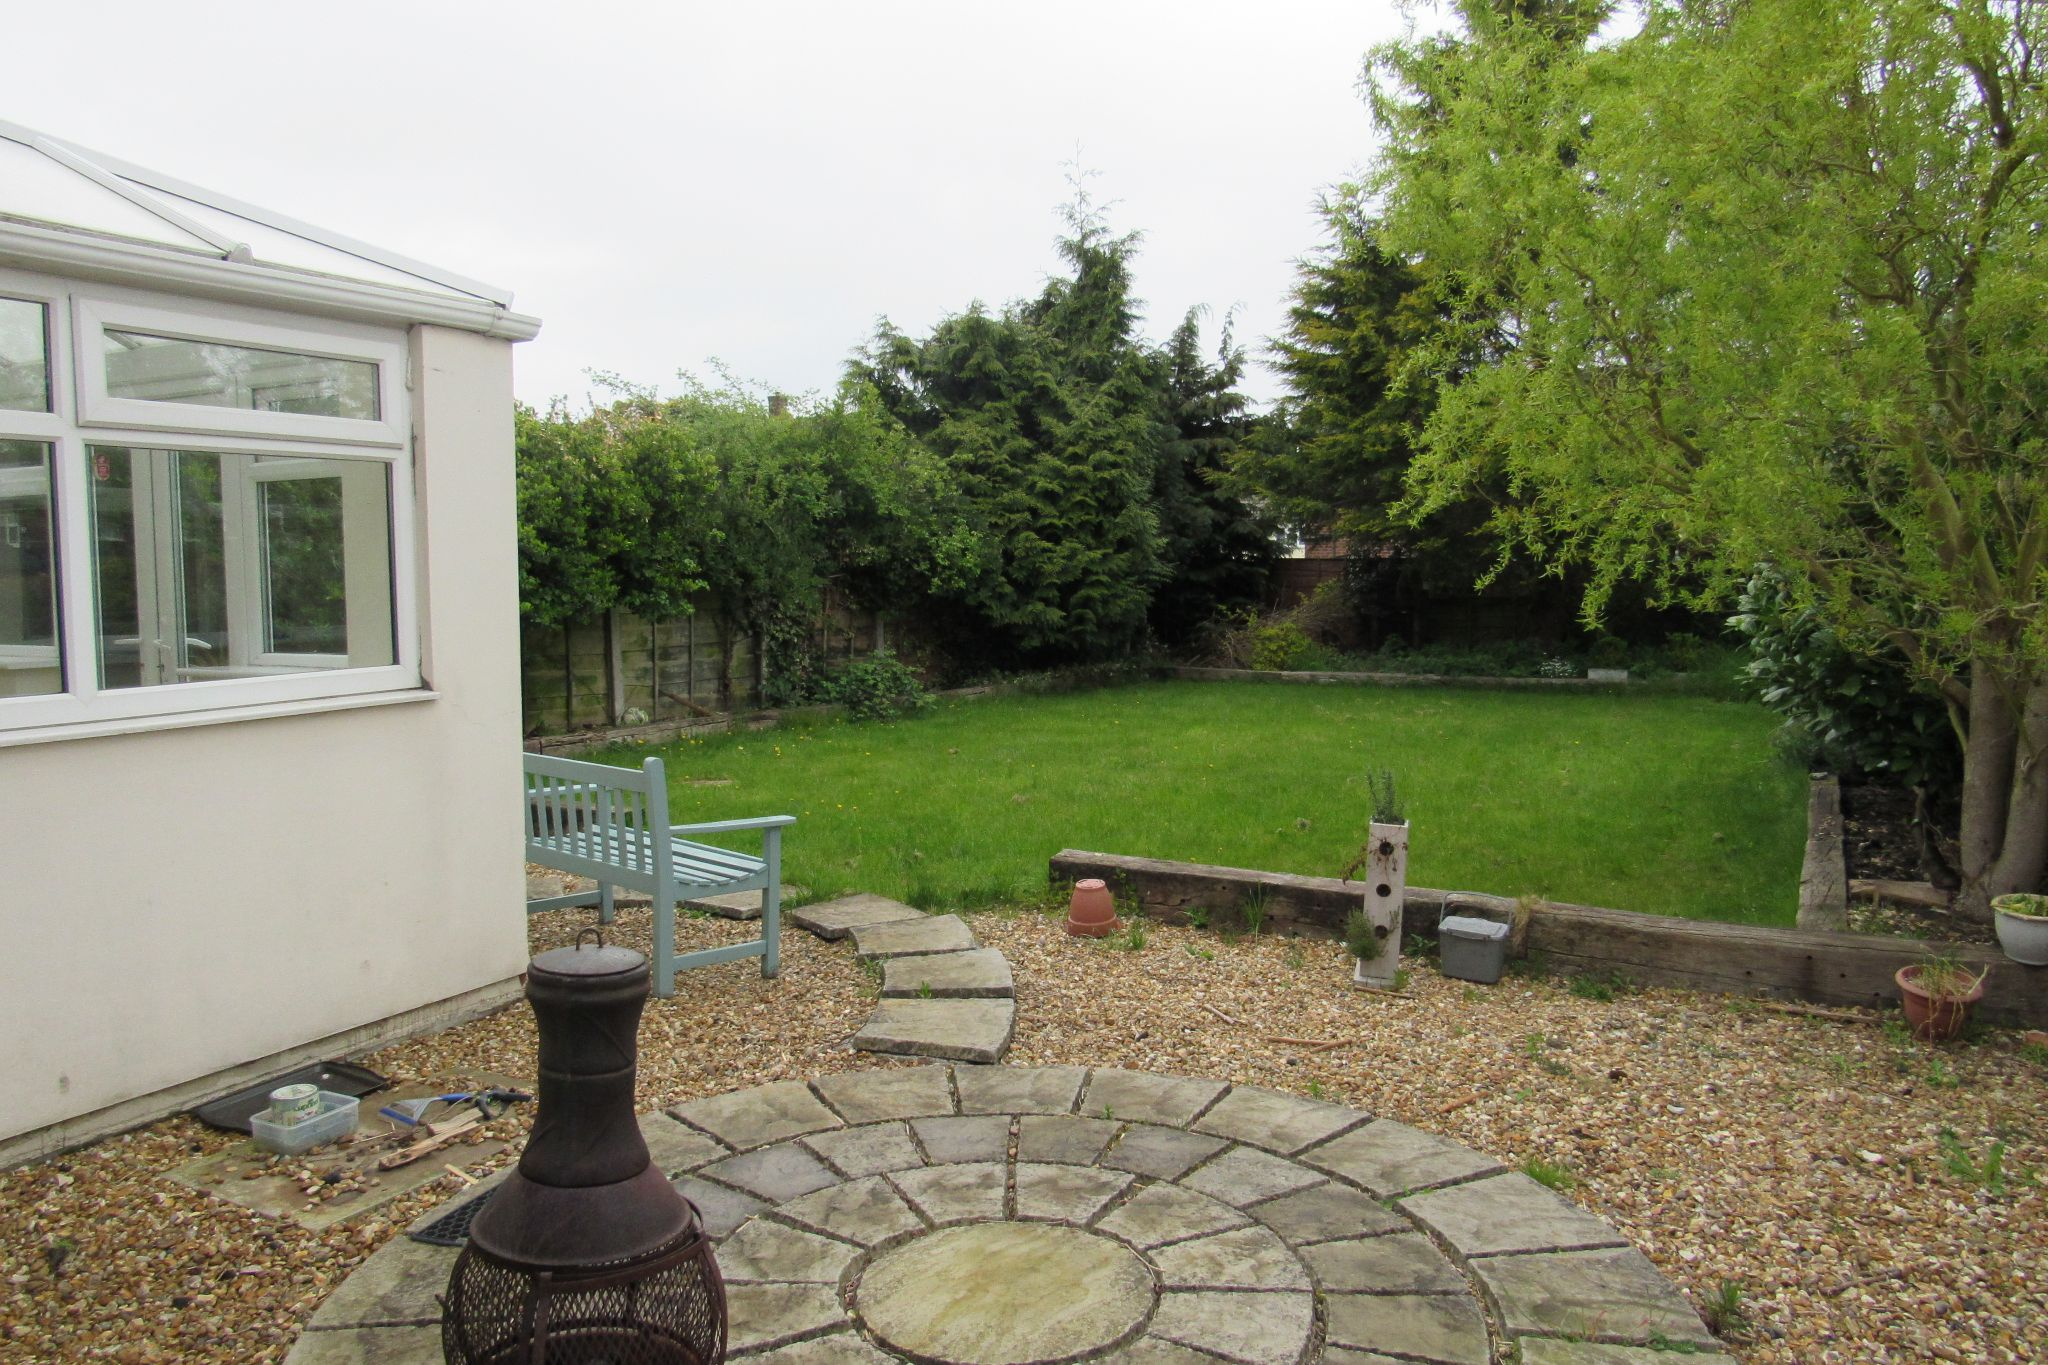 3 bedroom detached house For Sale in Manchester - Photograph 19.